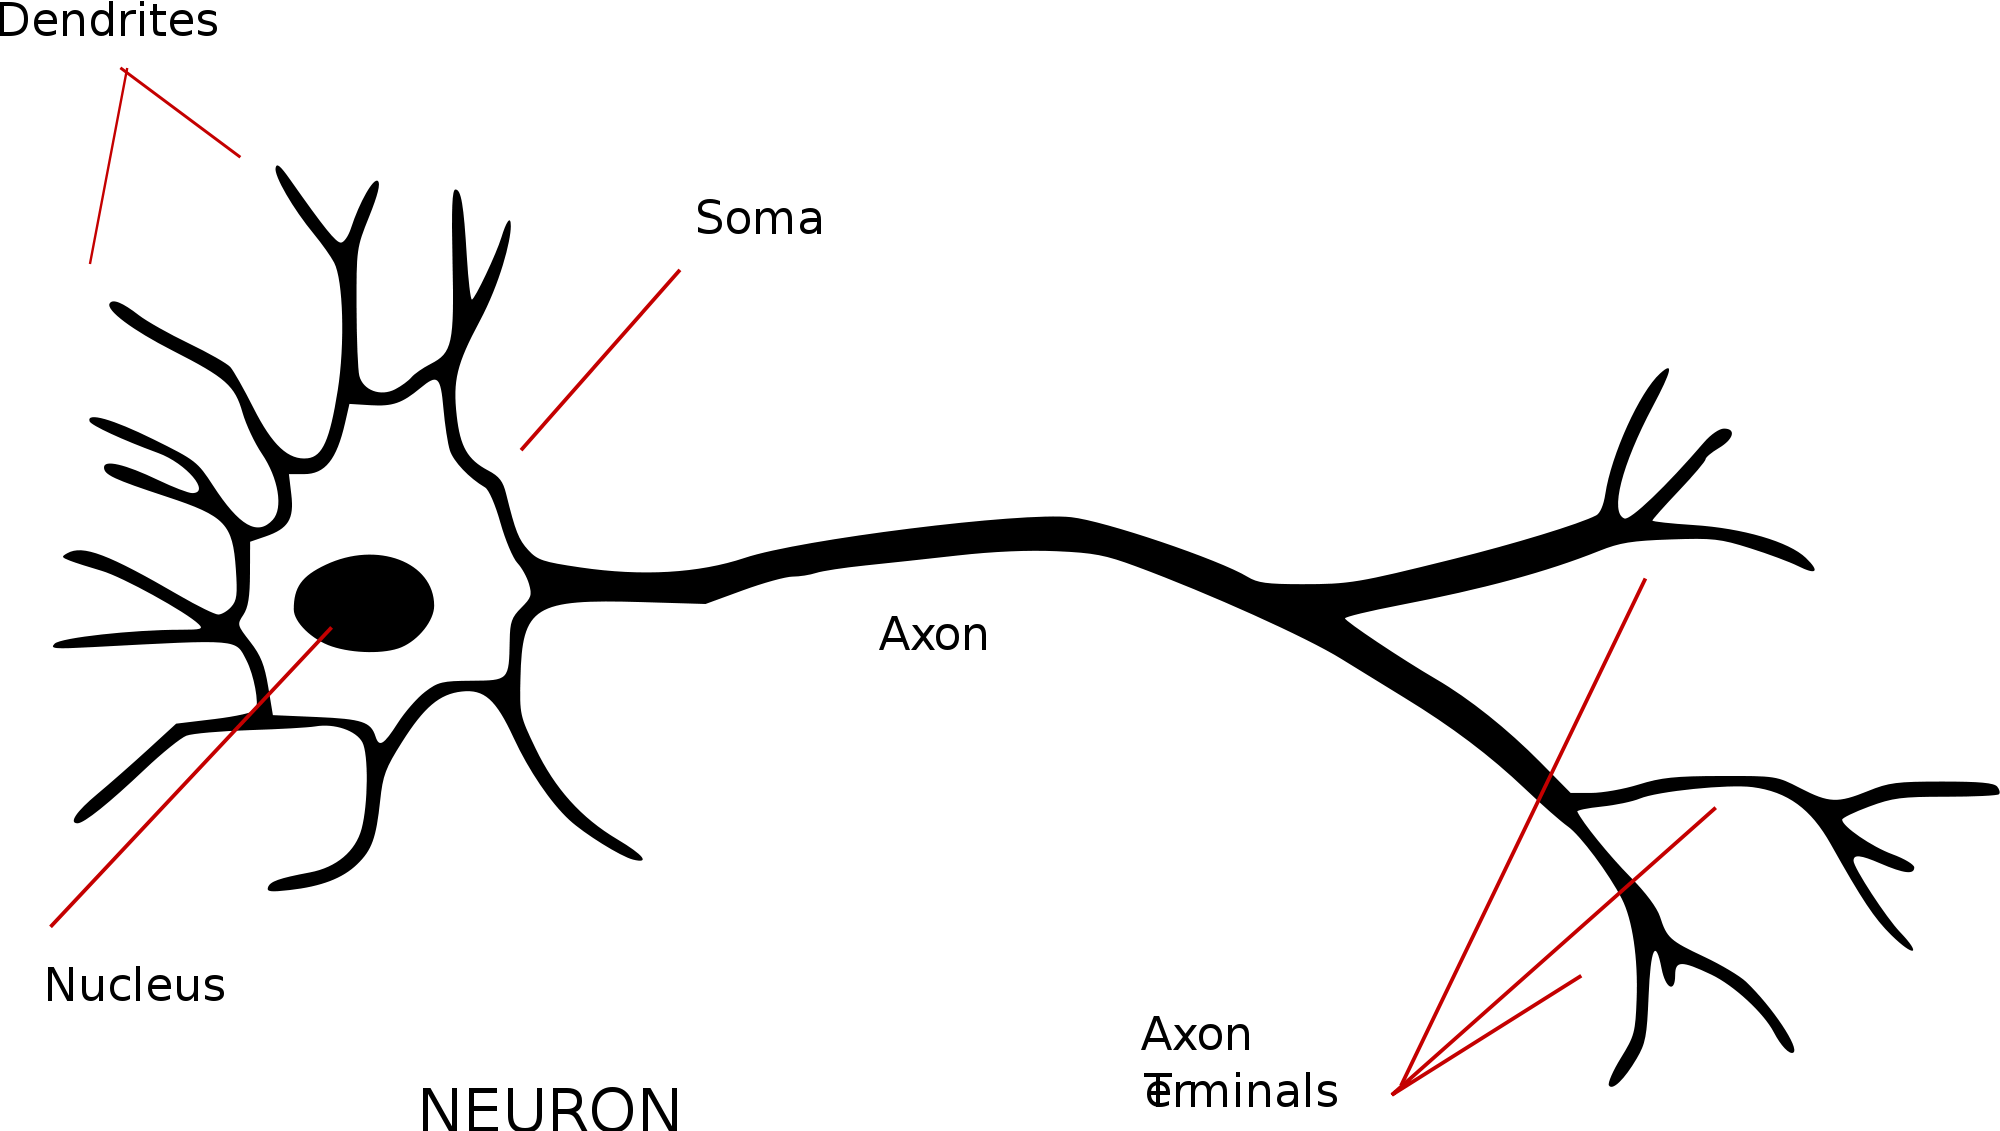 hight resolution of to better understand the motivation behind the perceptron we need a superficial understanding of the structure of biological neurons in our brains